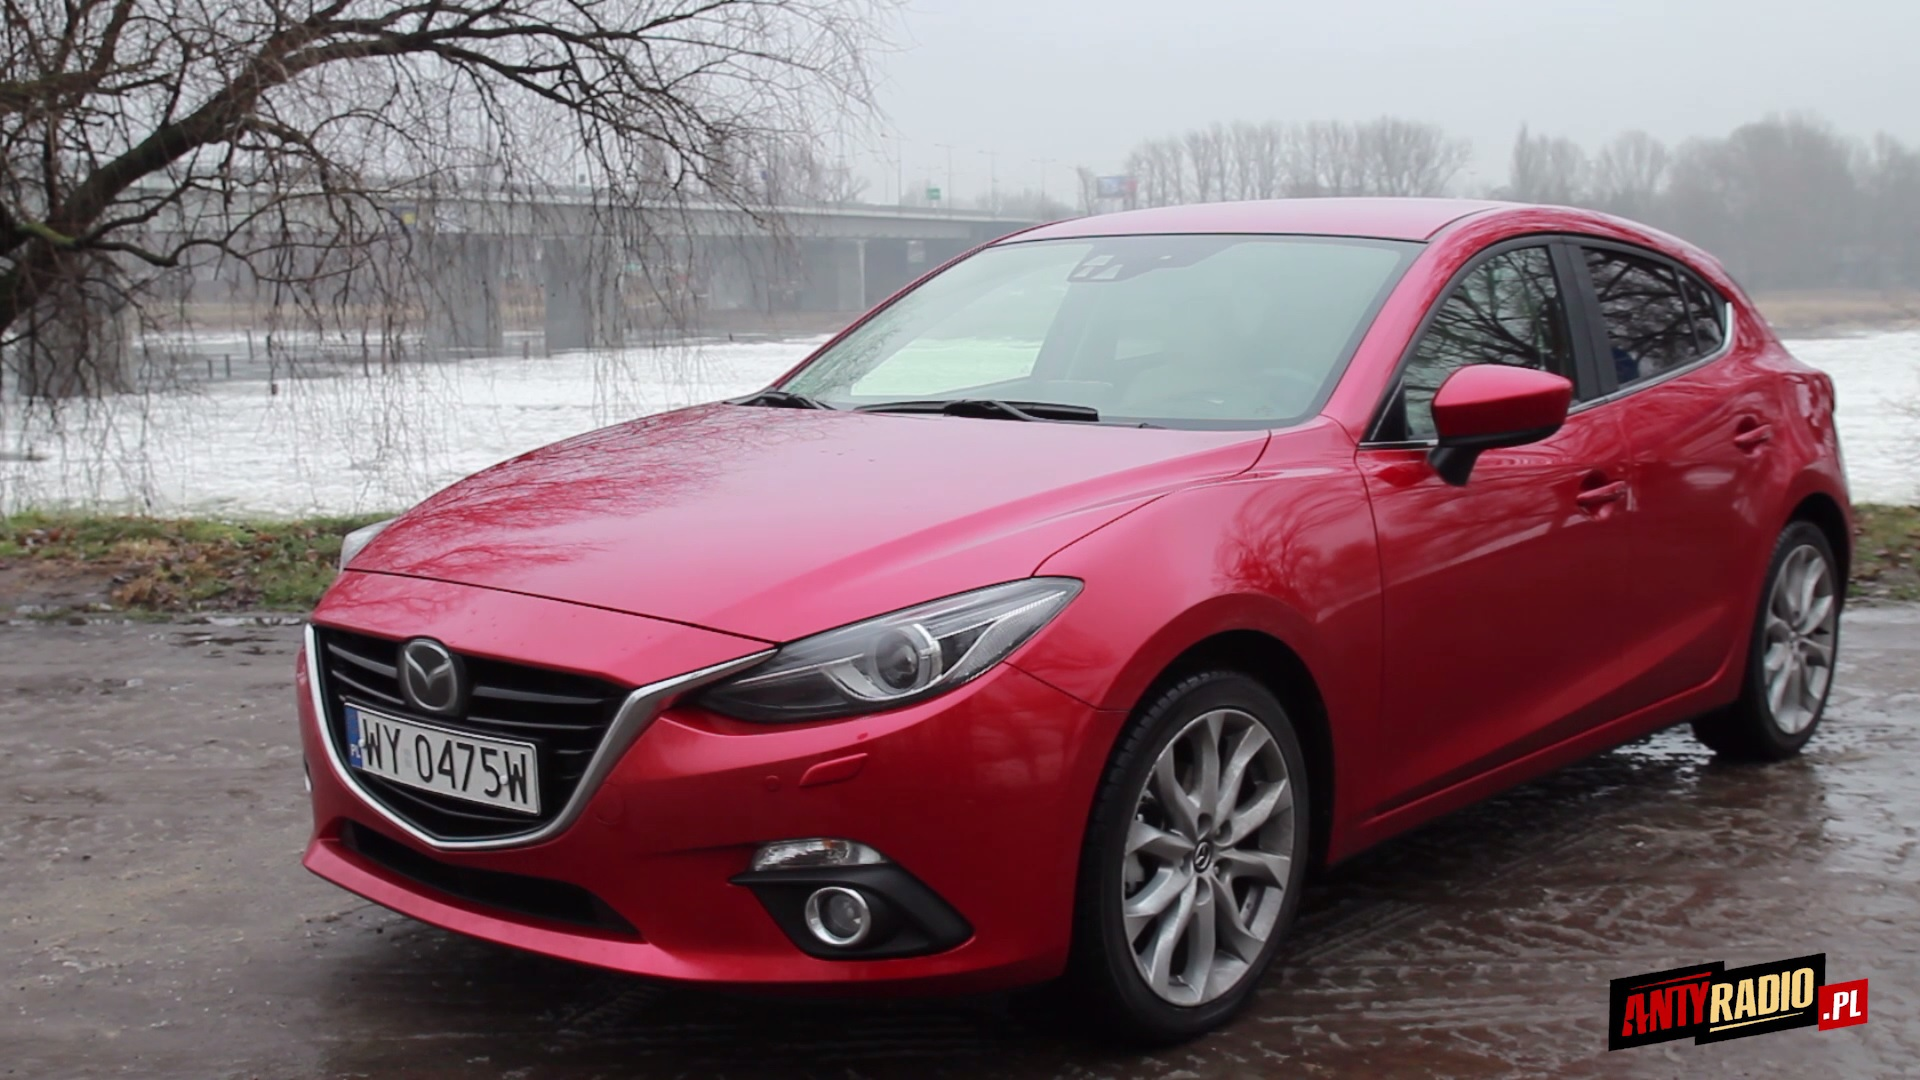 mazda 3 2 0 skyactiv g 165 km test. Black Bedroom Furniture Sets. Home Design Ideas